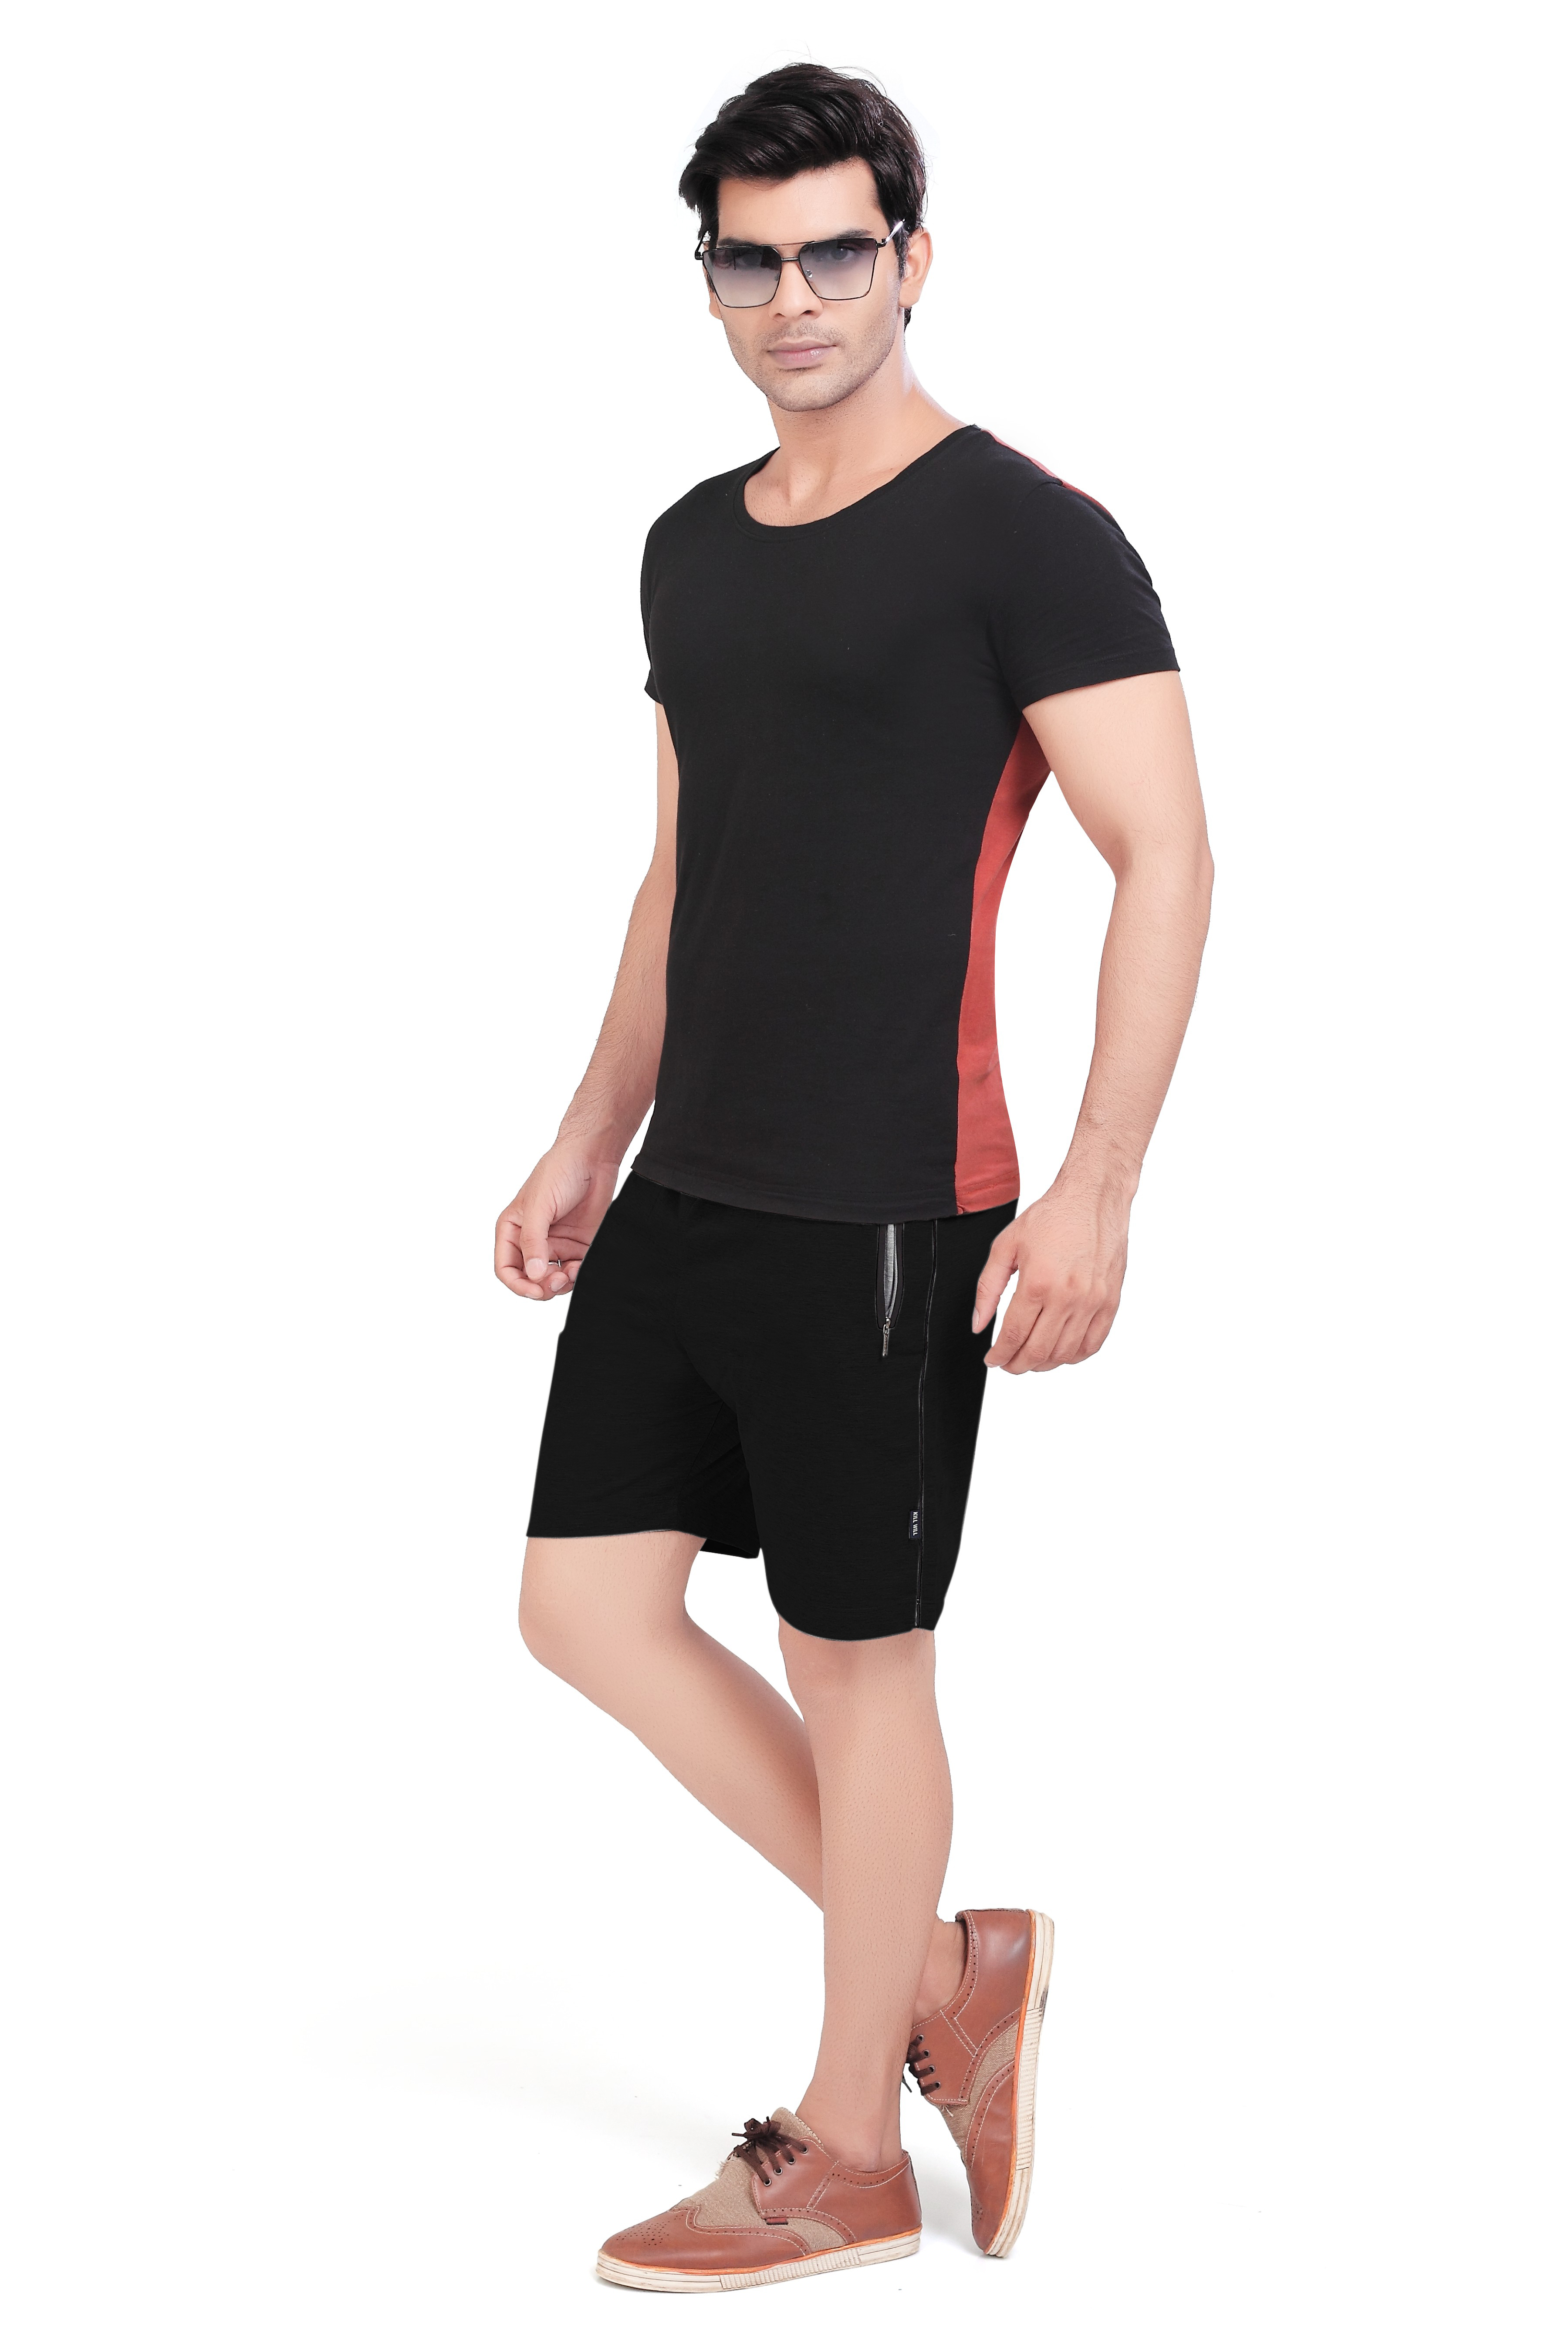 Cotton Mid Rise Shorts With Insert Pocket For Men (5XL, Black)